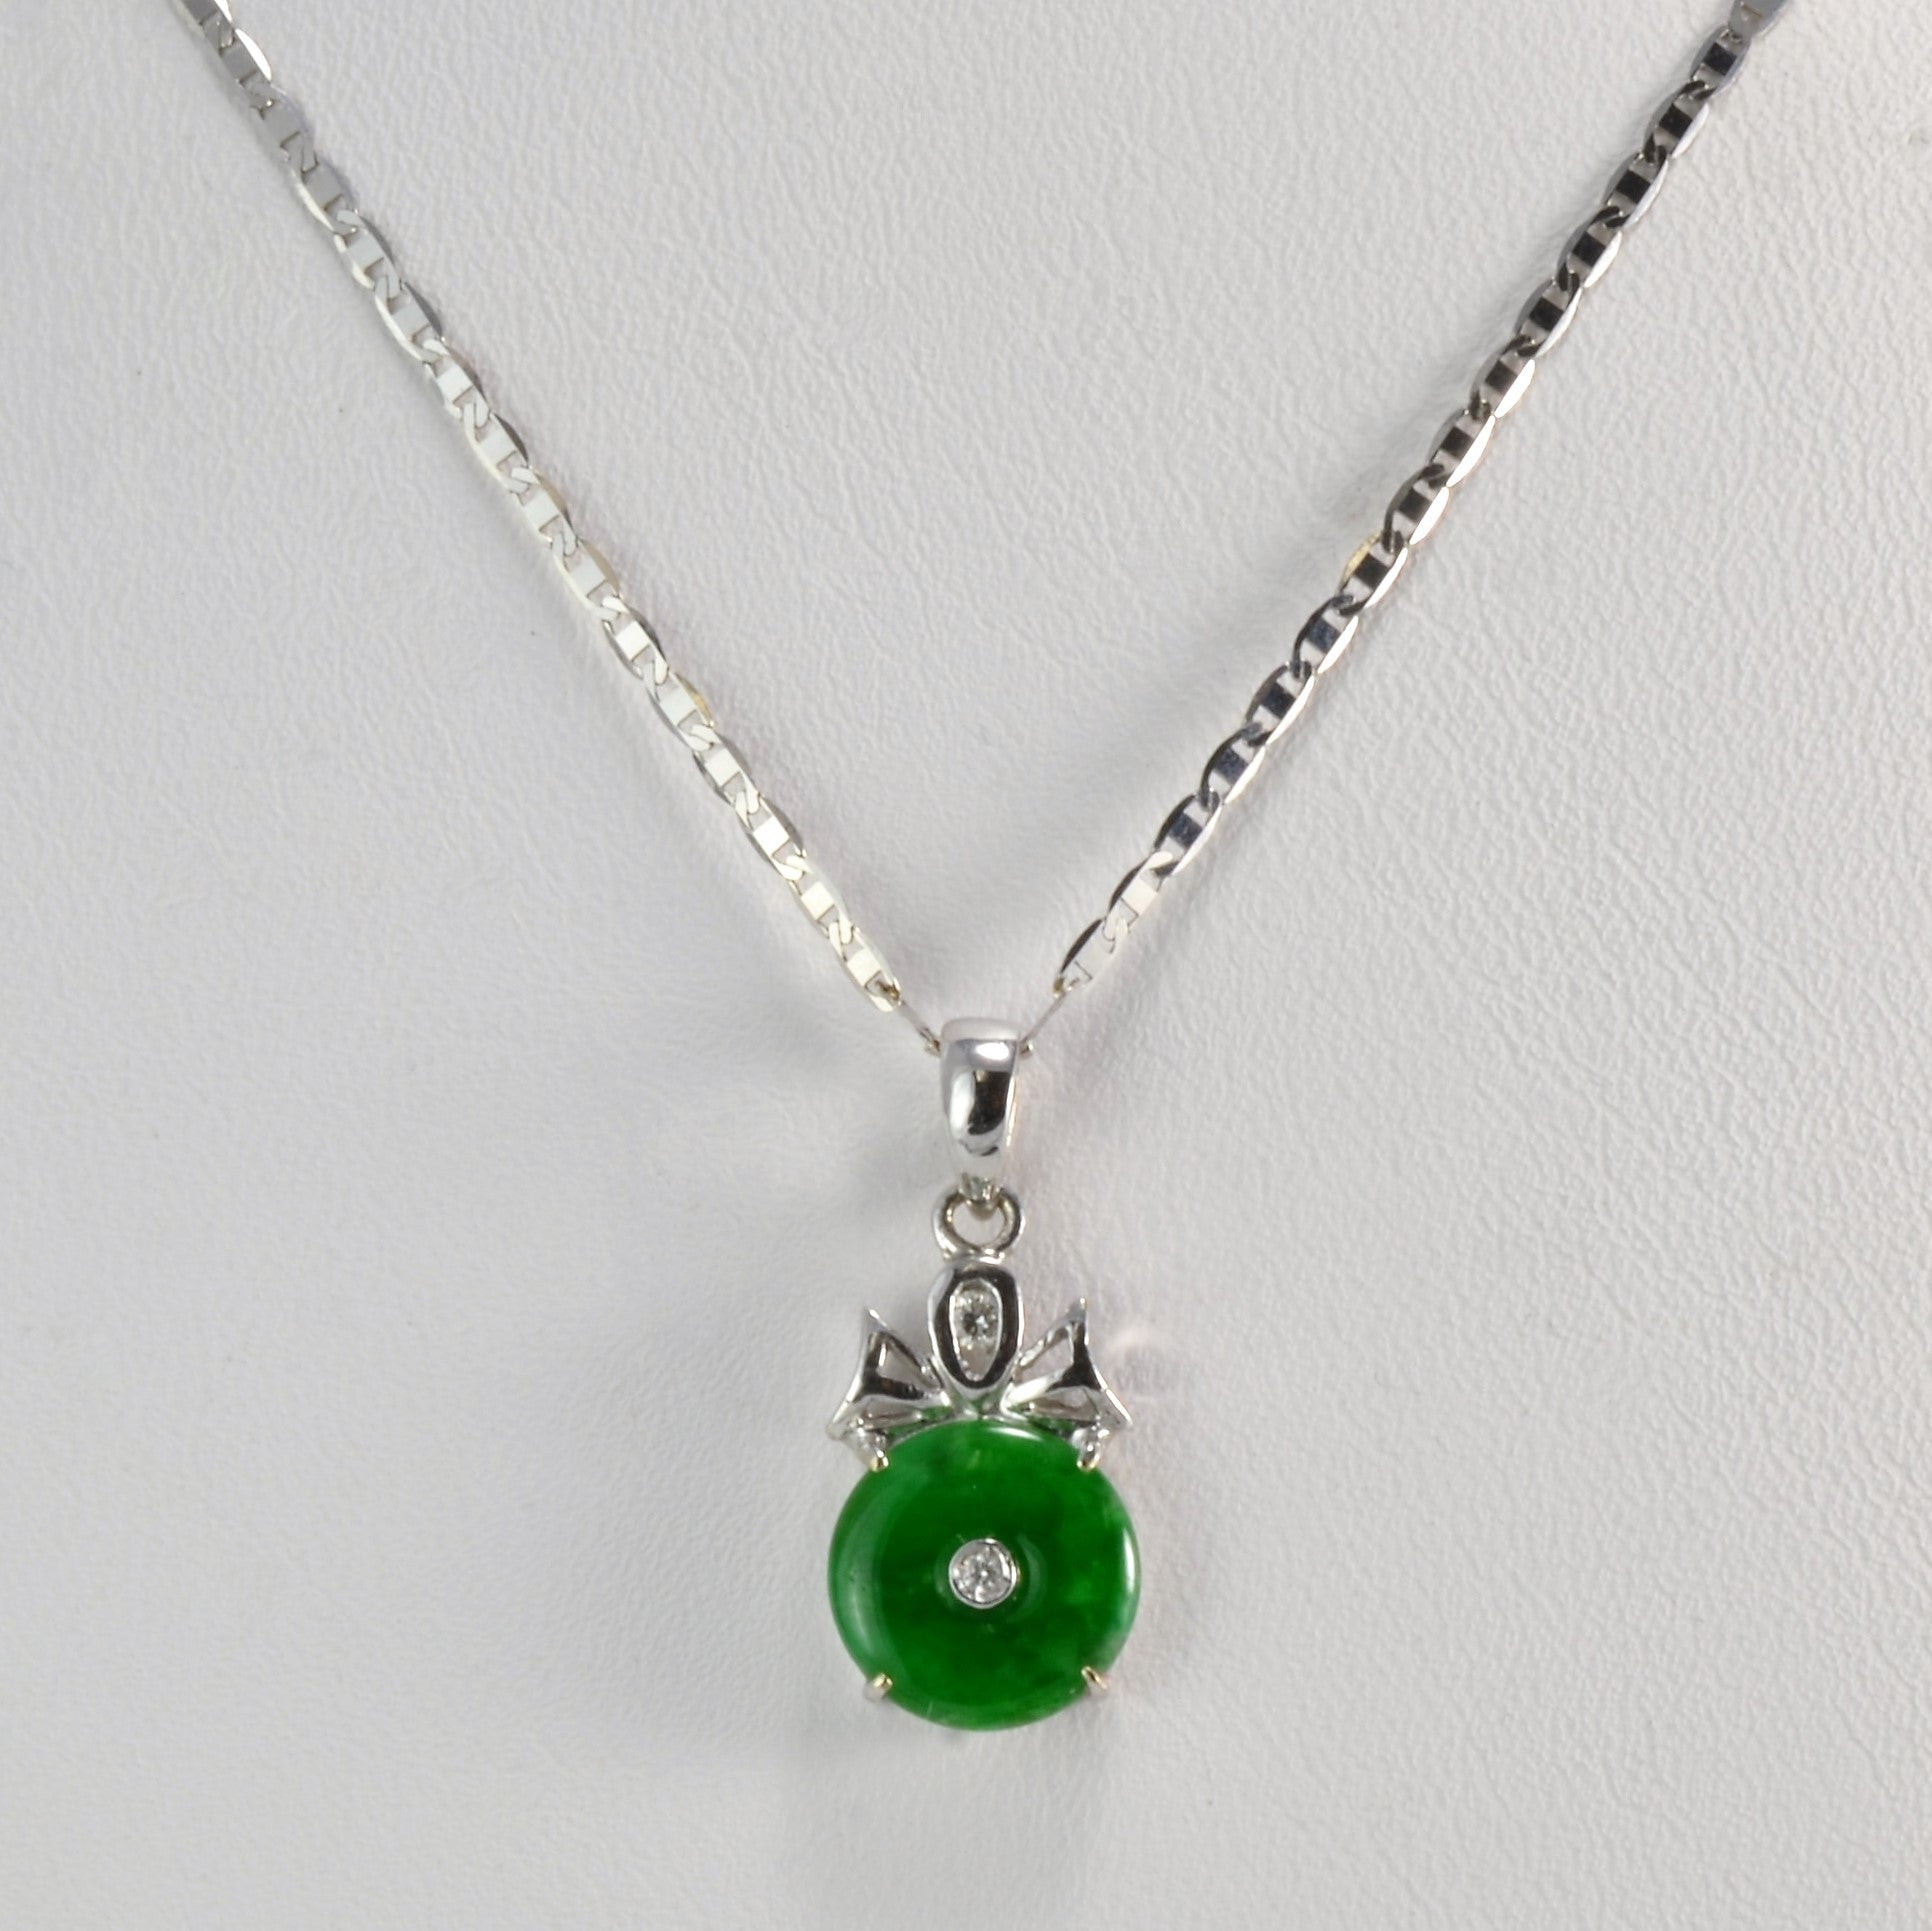 donut spiral nephrite jade necklace jewelry with pendant product go mens river leather gogo canadian